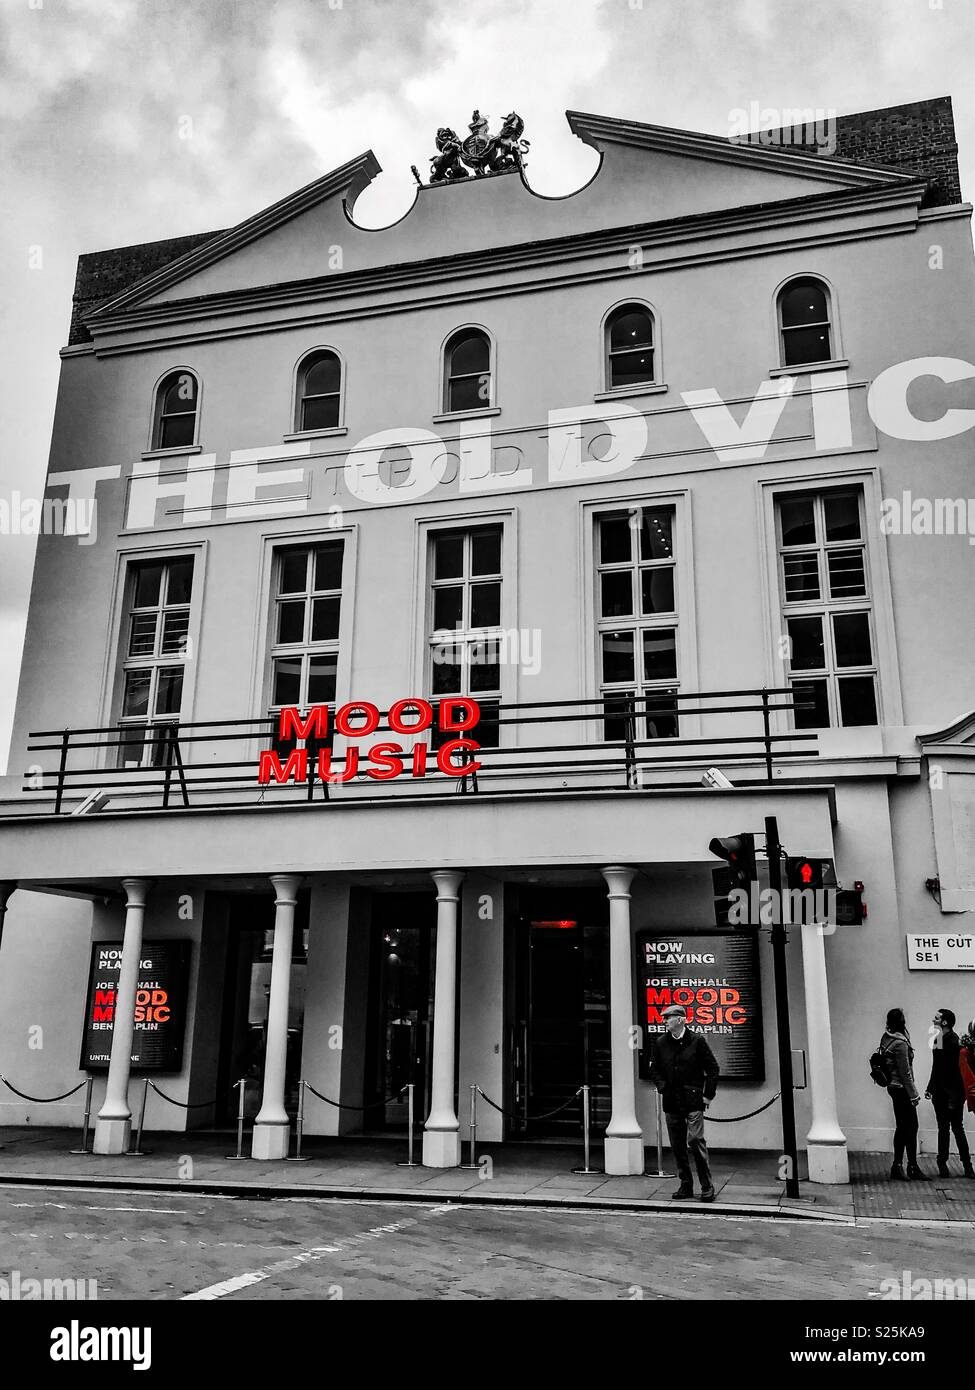 The Old Vic Theatre, London - Stock Image